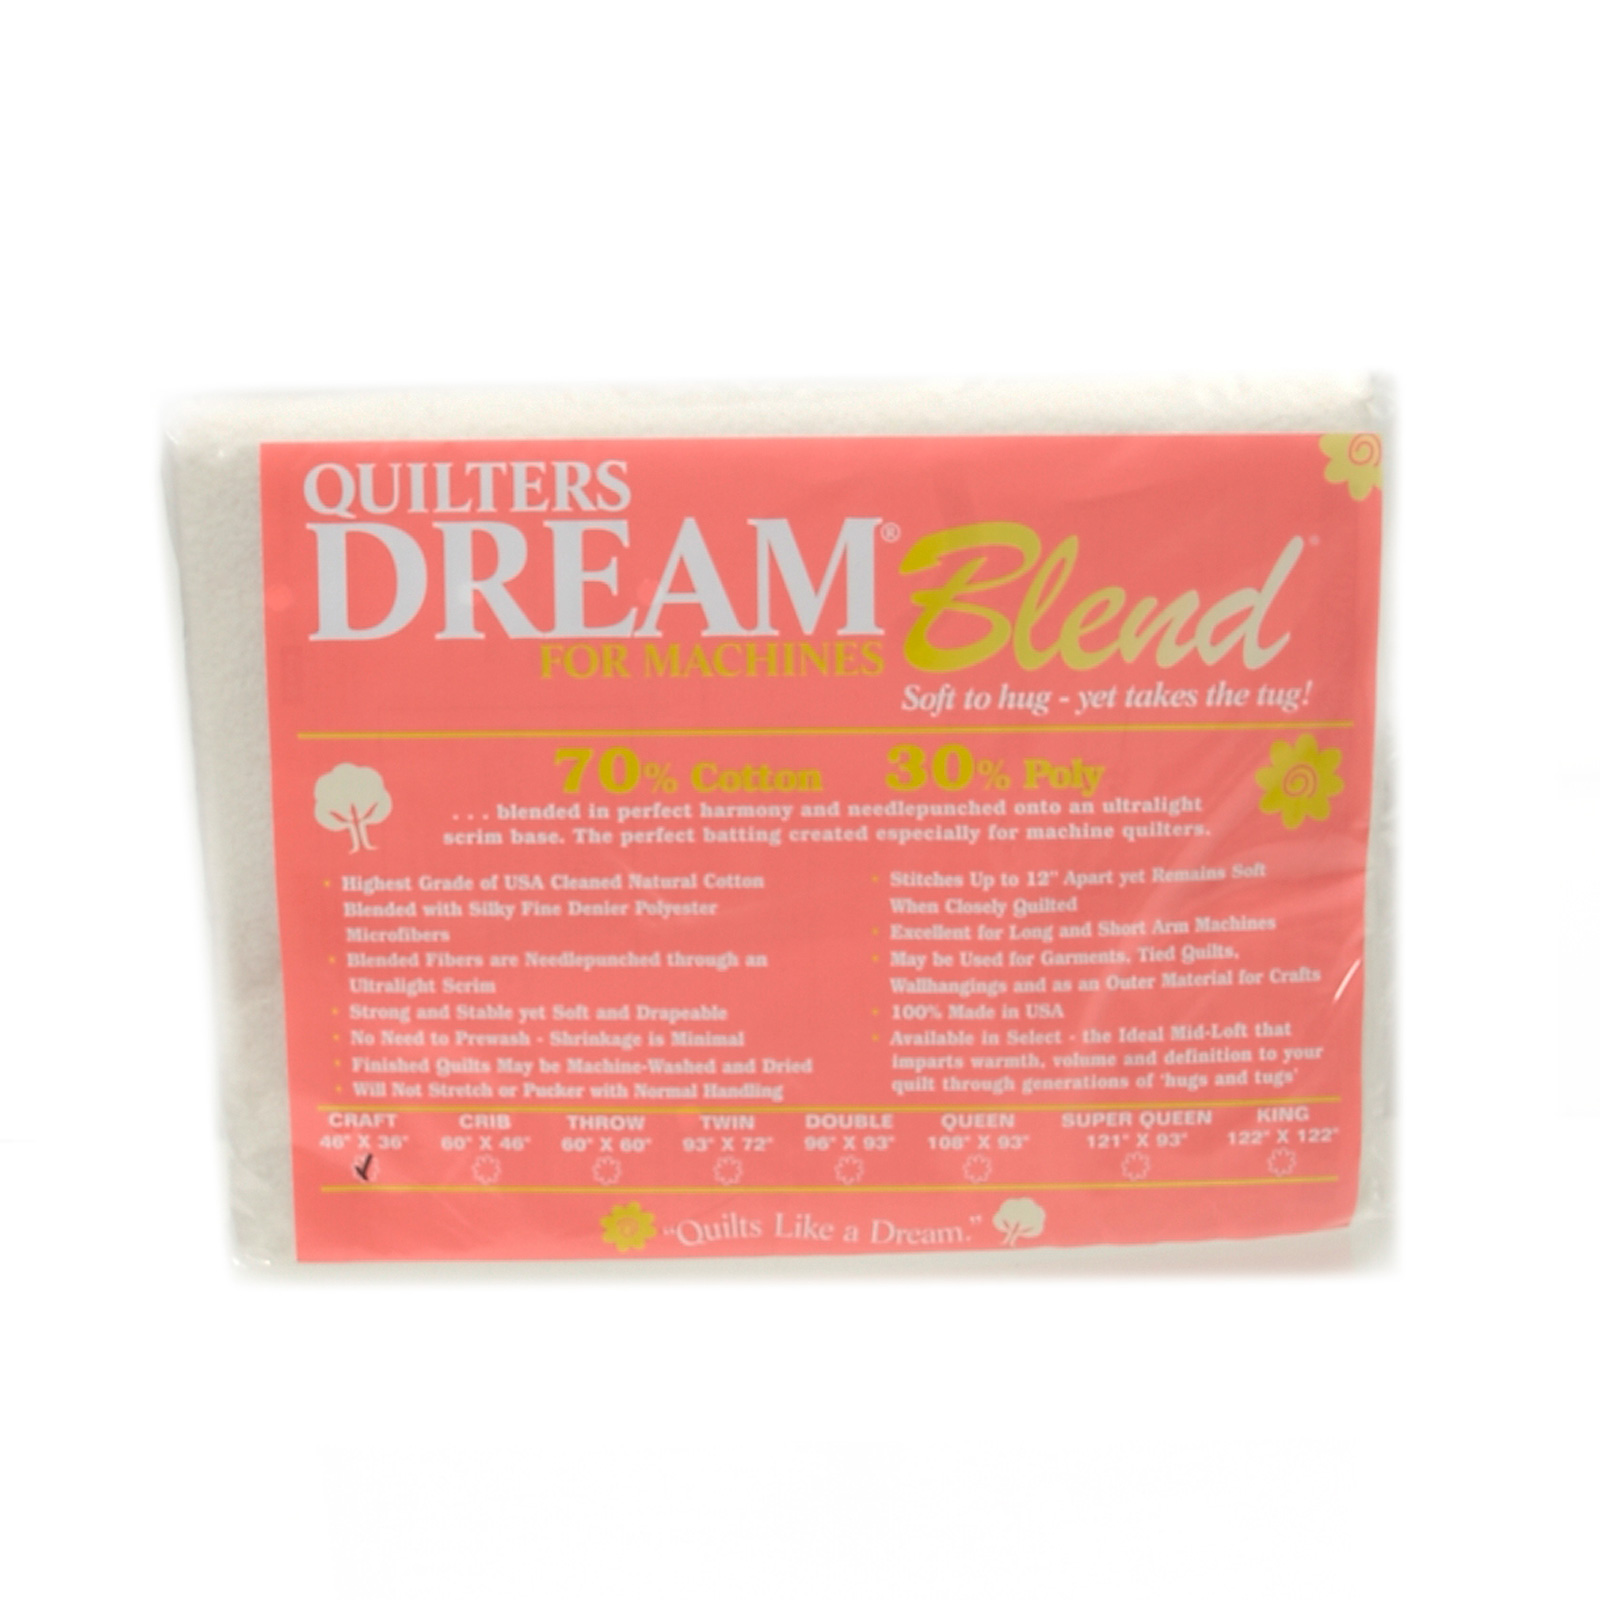 Quilter's Dream Blend (46'' x 36'') Craft by Quilter's Dream in USA